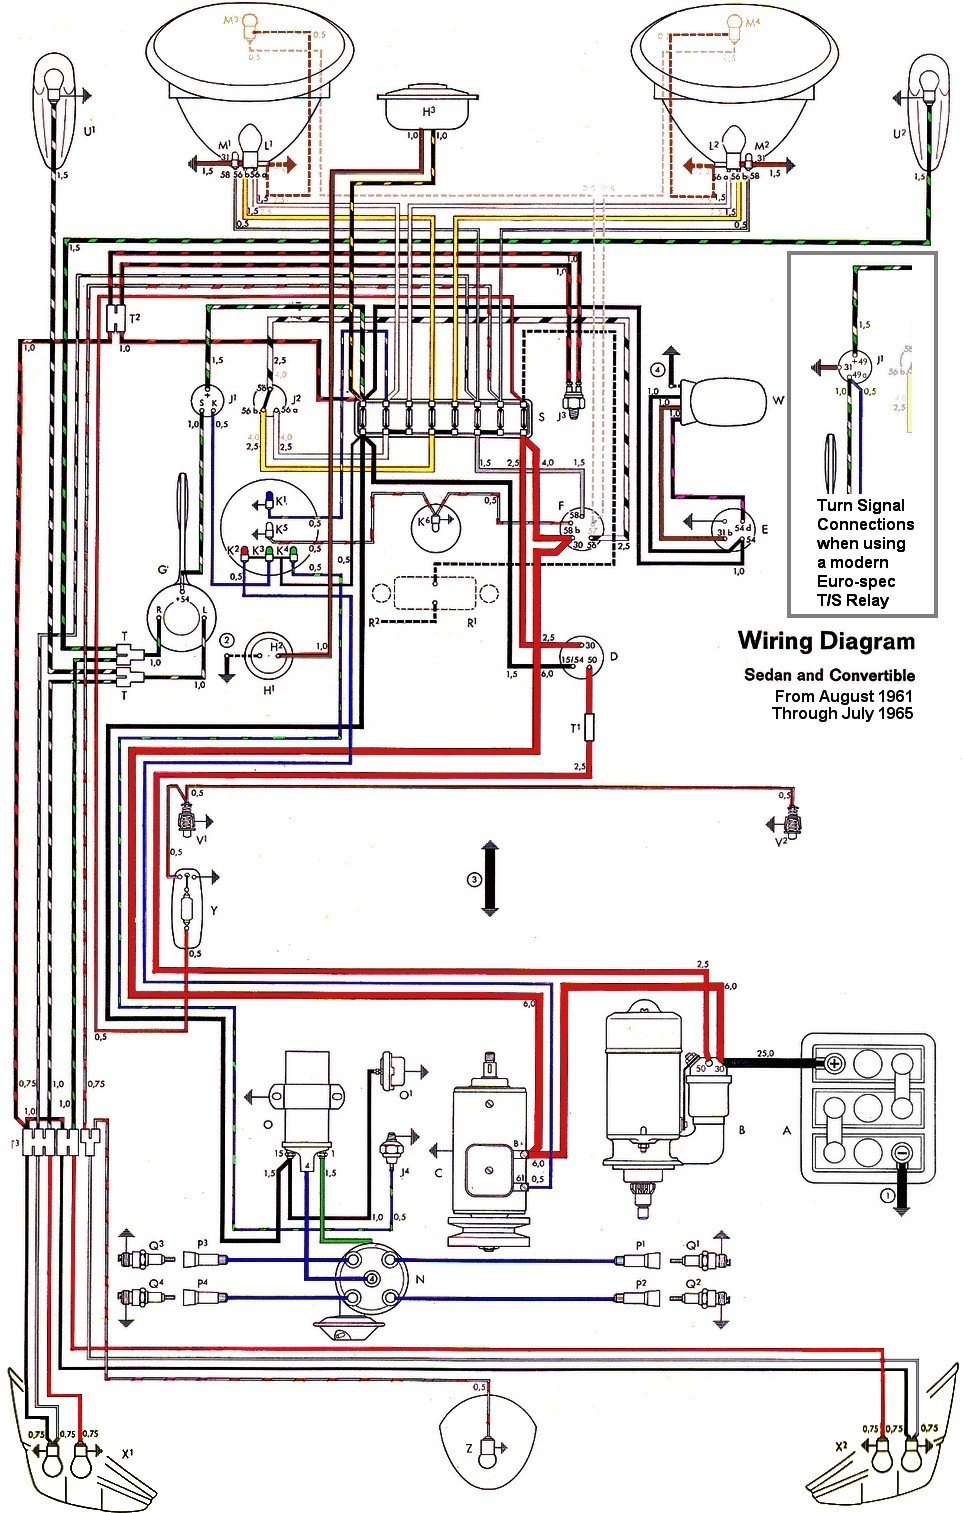 bug_62 65withinset wiring diagram vw beetle sedan and convertible 1961 1965 vw 1971 volkswagen super beetle wiring diagram at panicattacktreatment.co